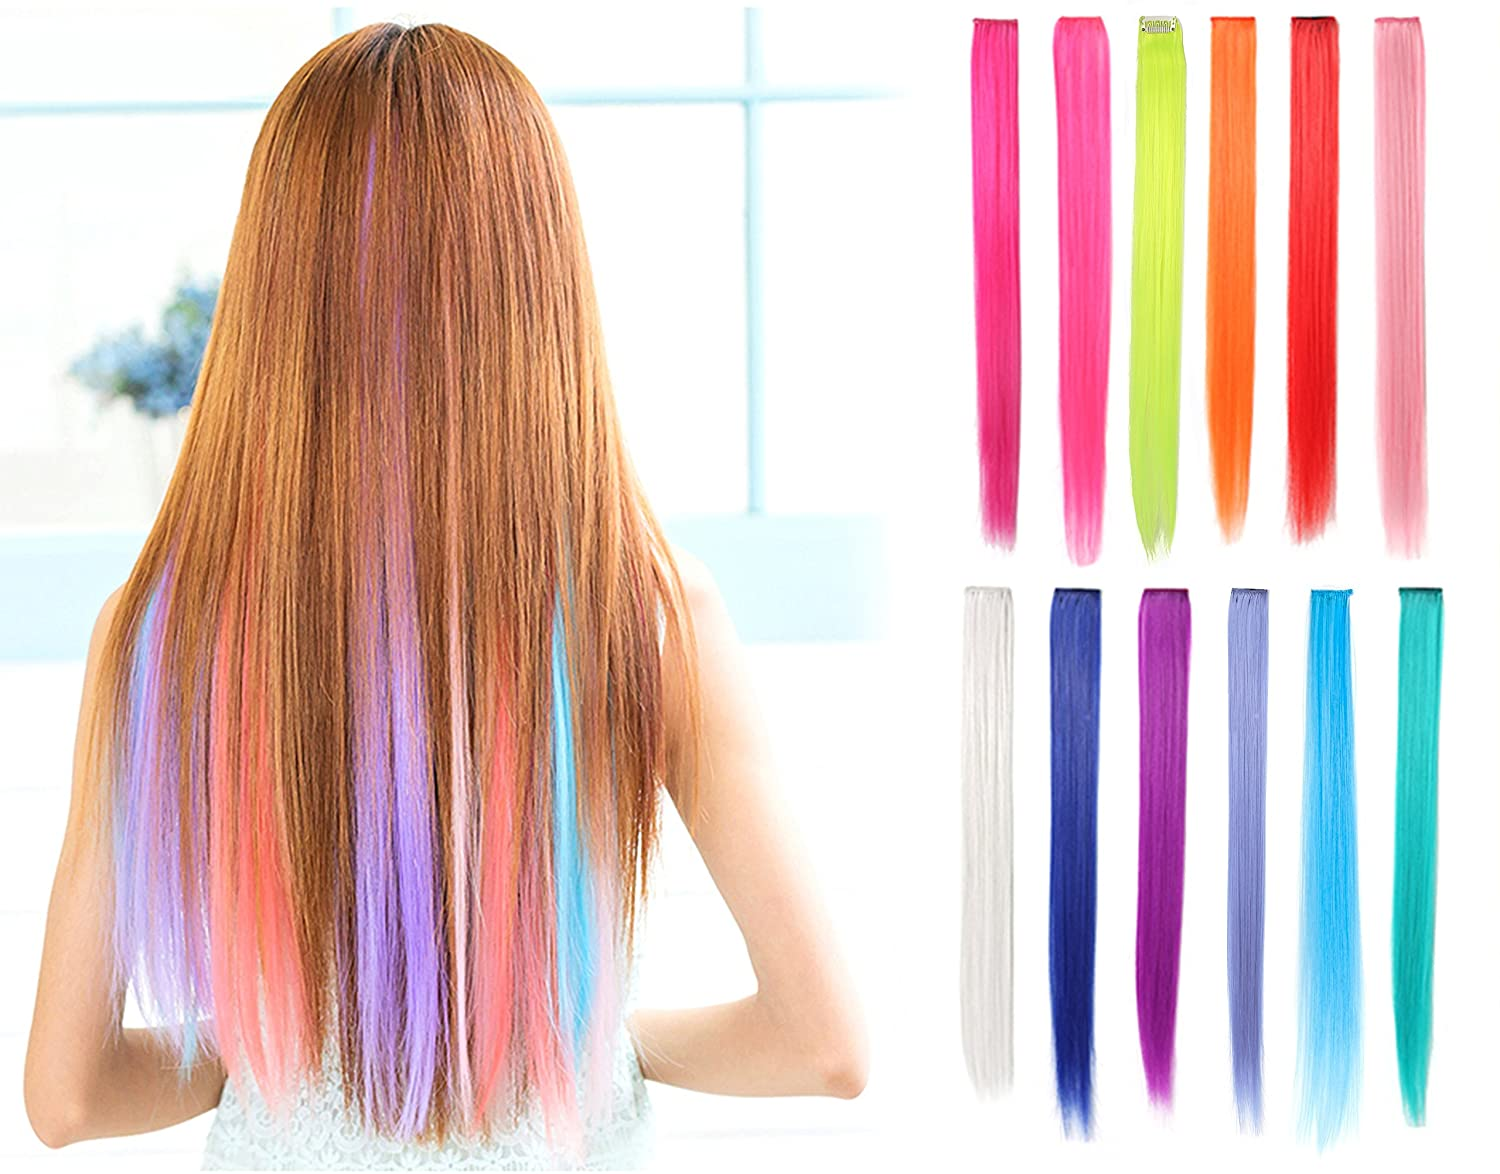 Amazon onedor 23 inch straight colored party highlight clip amazon onedor 23 inch straight colored party highlight clip on in hair extensions multiple colors full color set 12 pcs beauty pmusecretfo Images